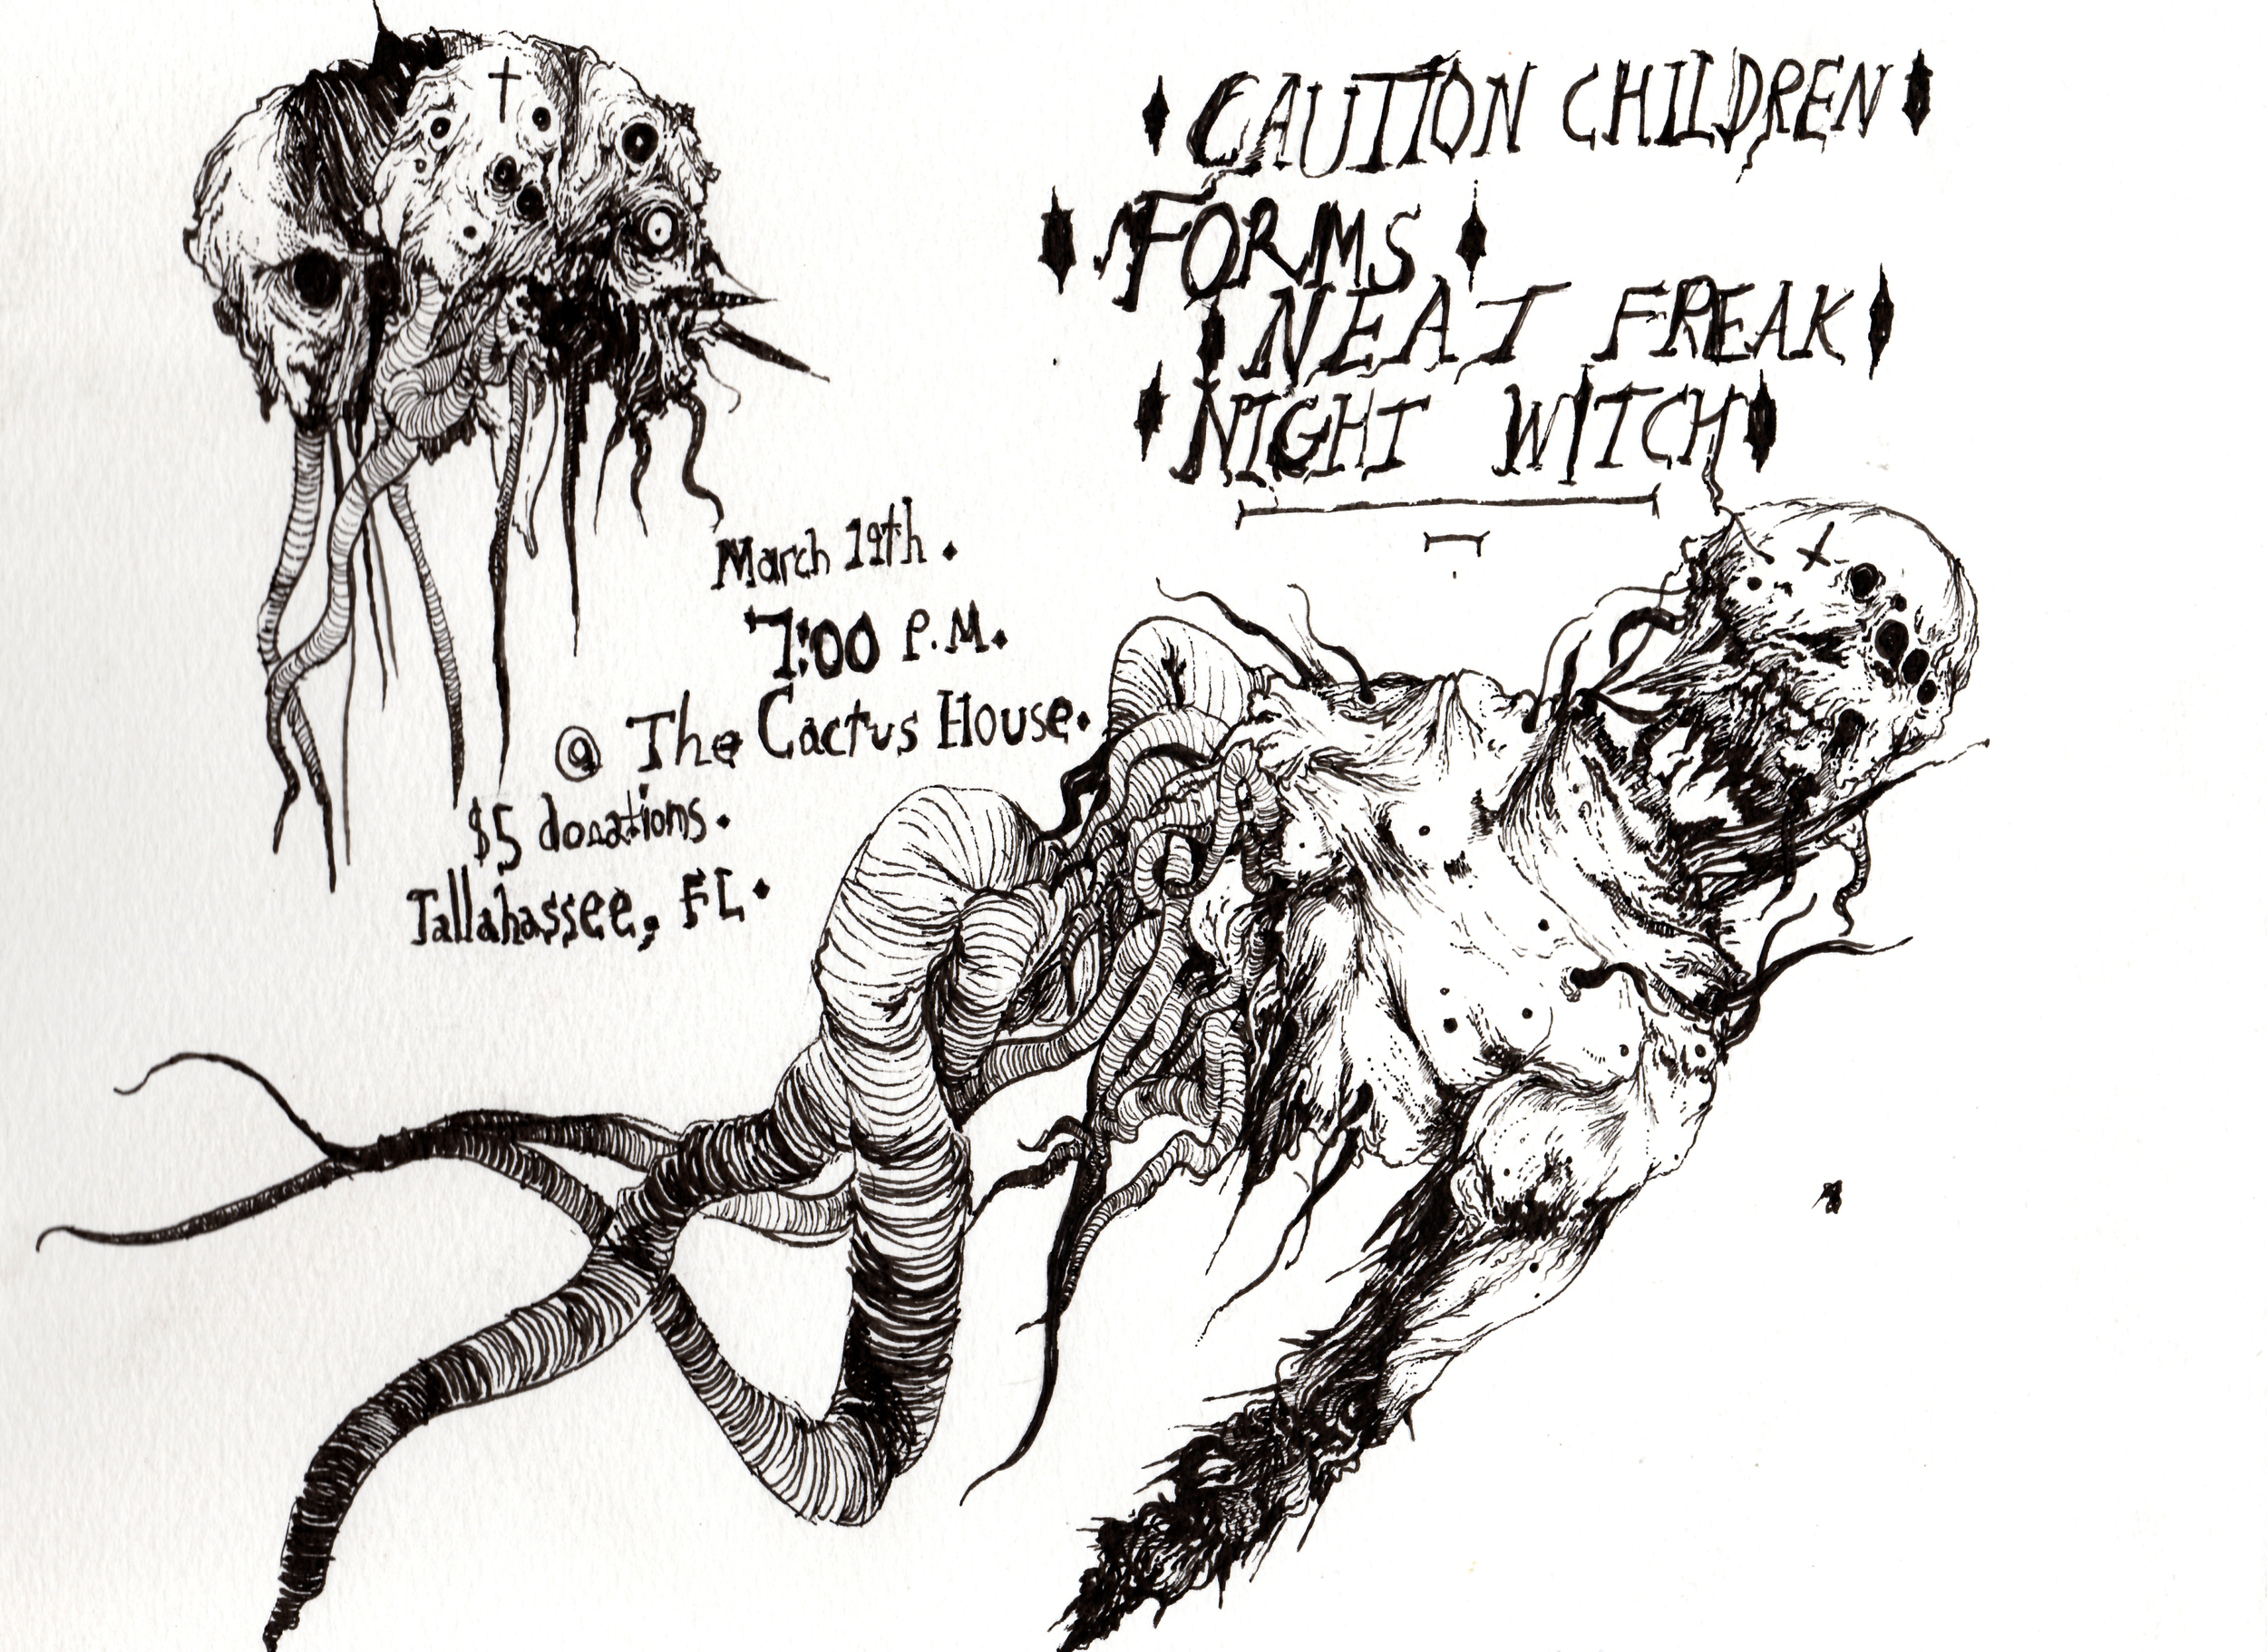 Flier for a SXSW tour kickoff show featuringThe Caution Children, Forms, and Neat Freak.